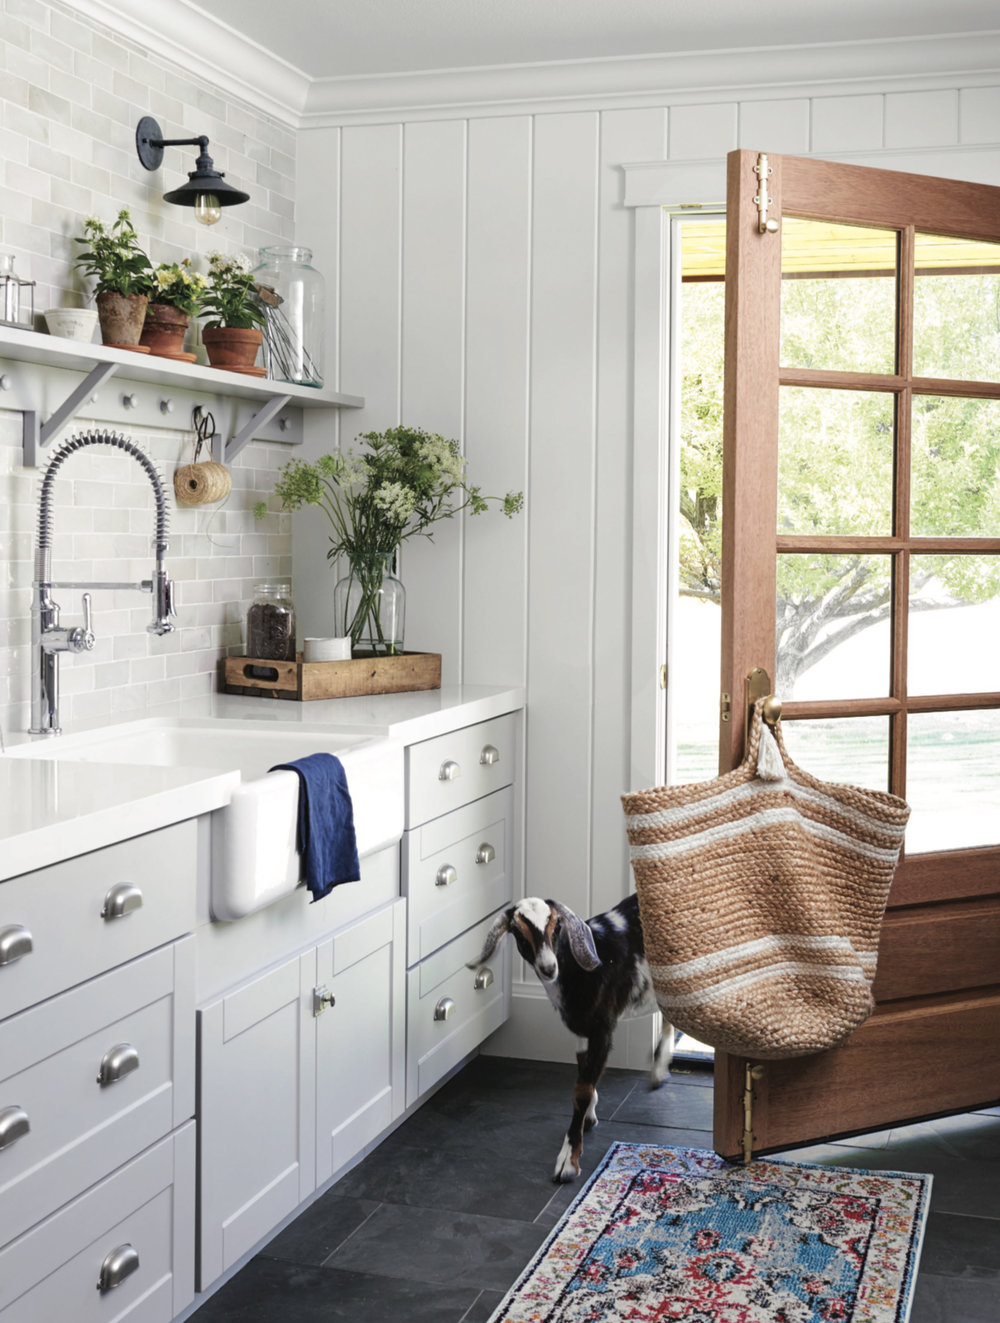 Farmhouse+laundry+room+design+with+tongue+and+groove+quartz+countertops+gray+cabinets+|+#farmhousedesign+#farmhouse+#laundryroom copy.jpg